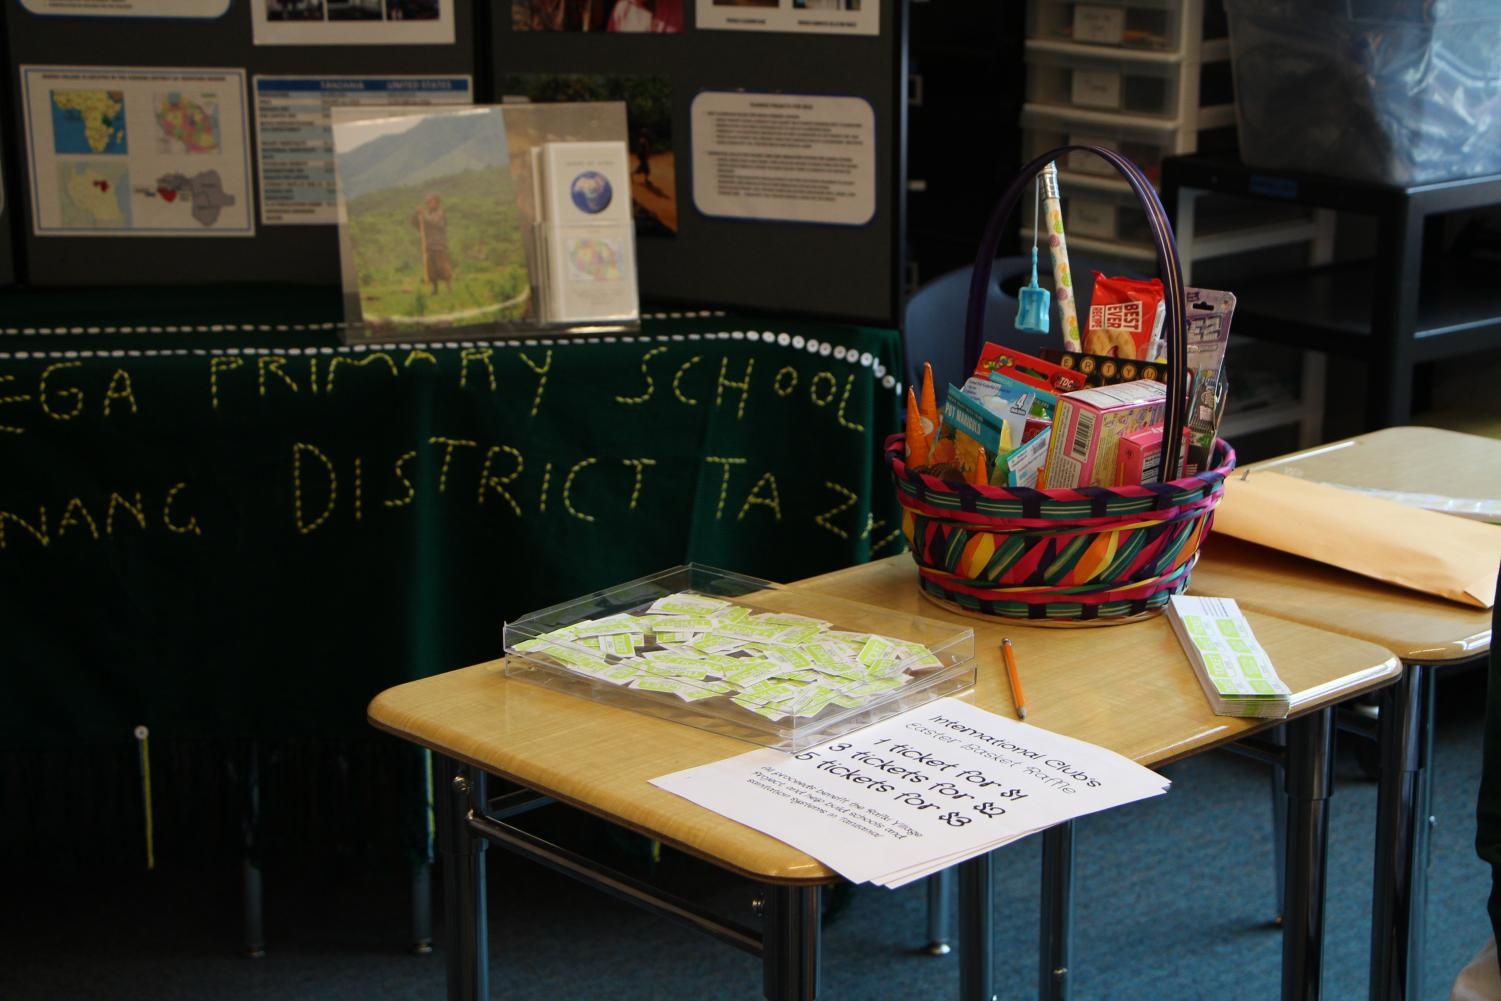 Students+had+the+opportunity+to+purchase+raffle+tickets+to+win+a+basket+of+school+supplies.+Crystal+Scott%2C+junior%2C+was+the+winner+of+the+basket.